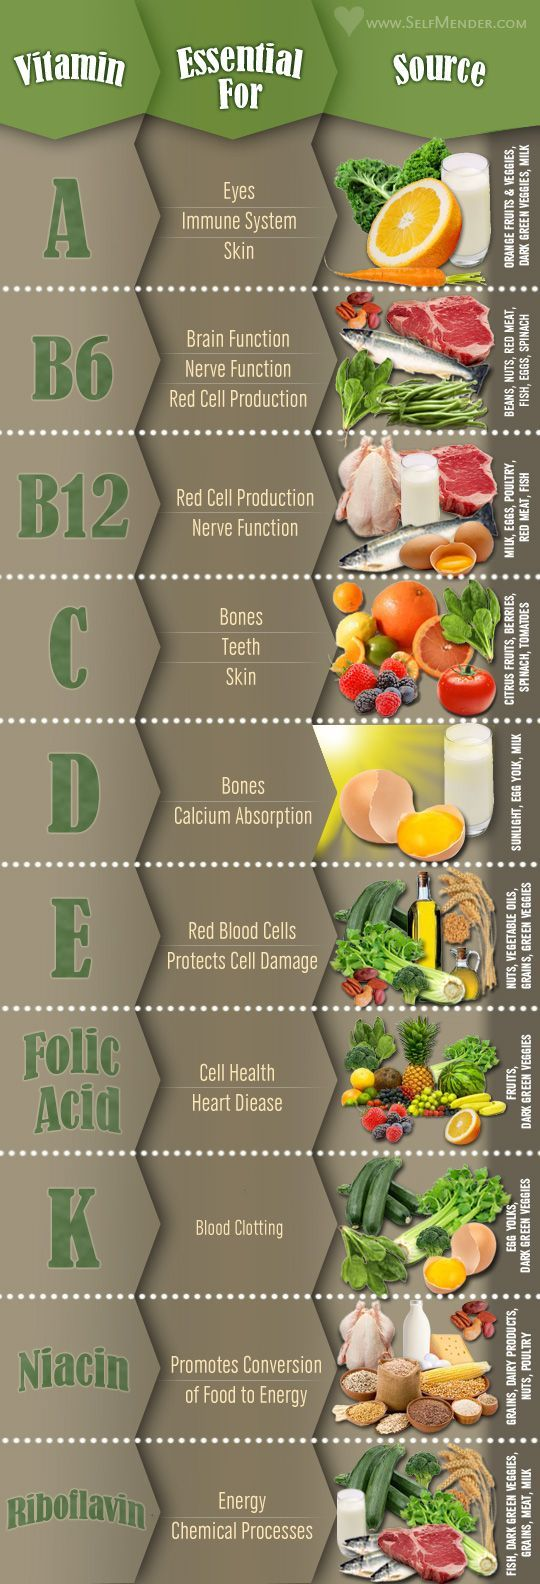 These 24 Diagrams Make Healthy Eating Super Easy Healthy eating explained in 24 diagrams. I\u2019ve been searching for something like this to show you for a long time. Finally, I found it. These diagrams #nutritionhealthyeating